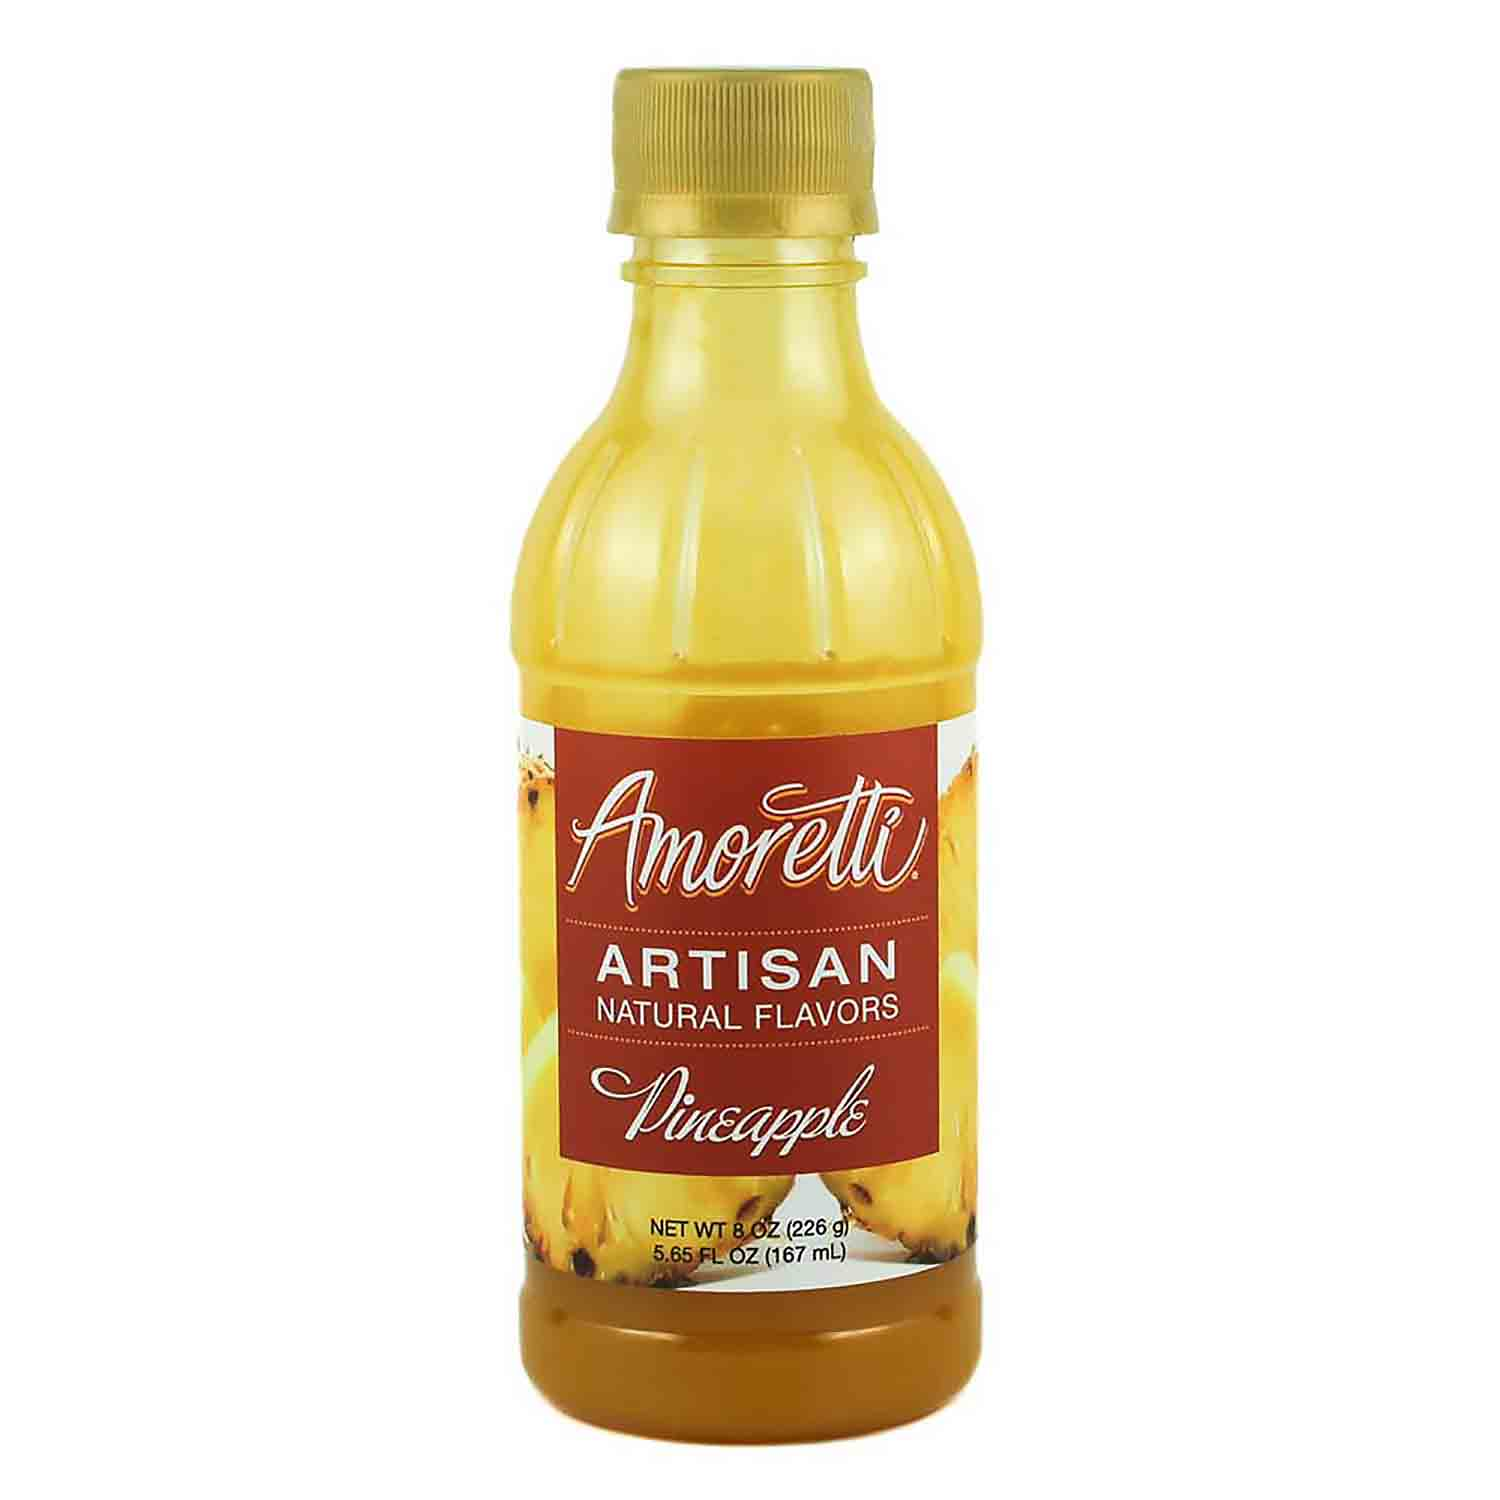 Pineapple Artisan Natural Flavors